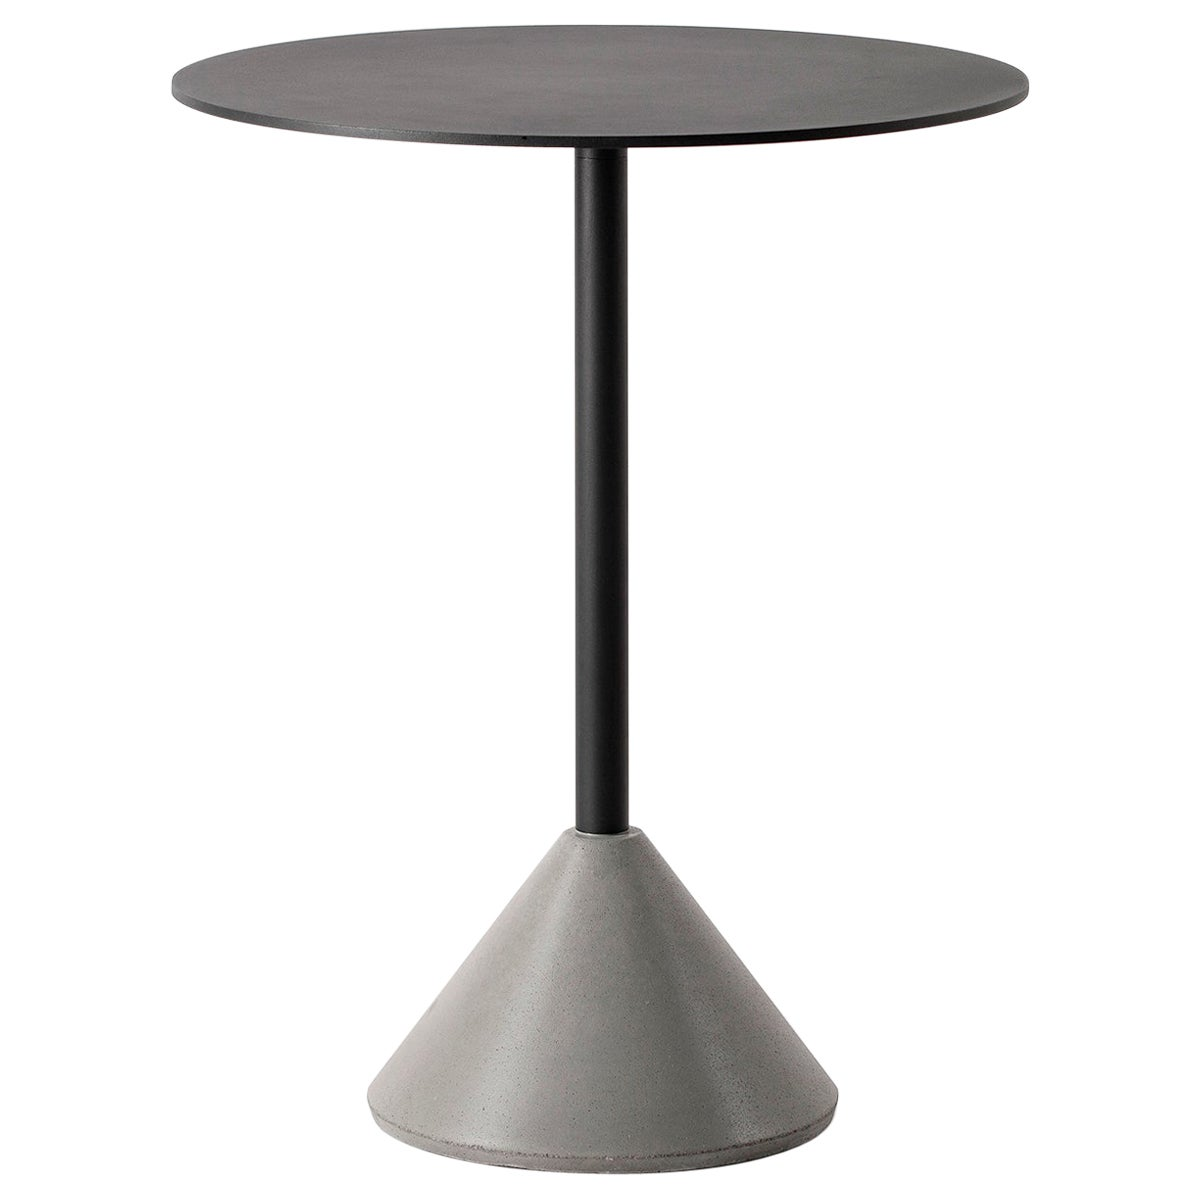 Round Dining Table 'DING' Made of Concrete and Aluminum 'Black'